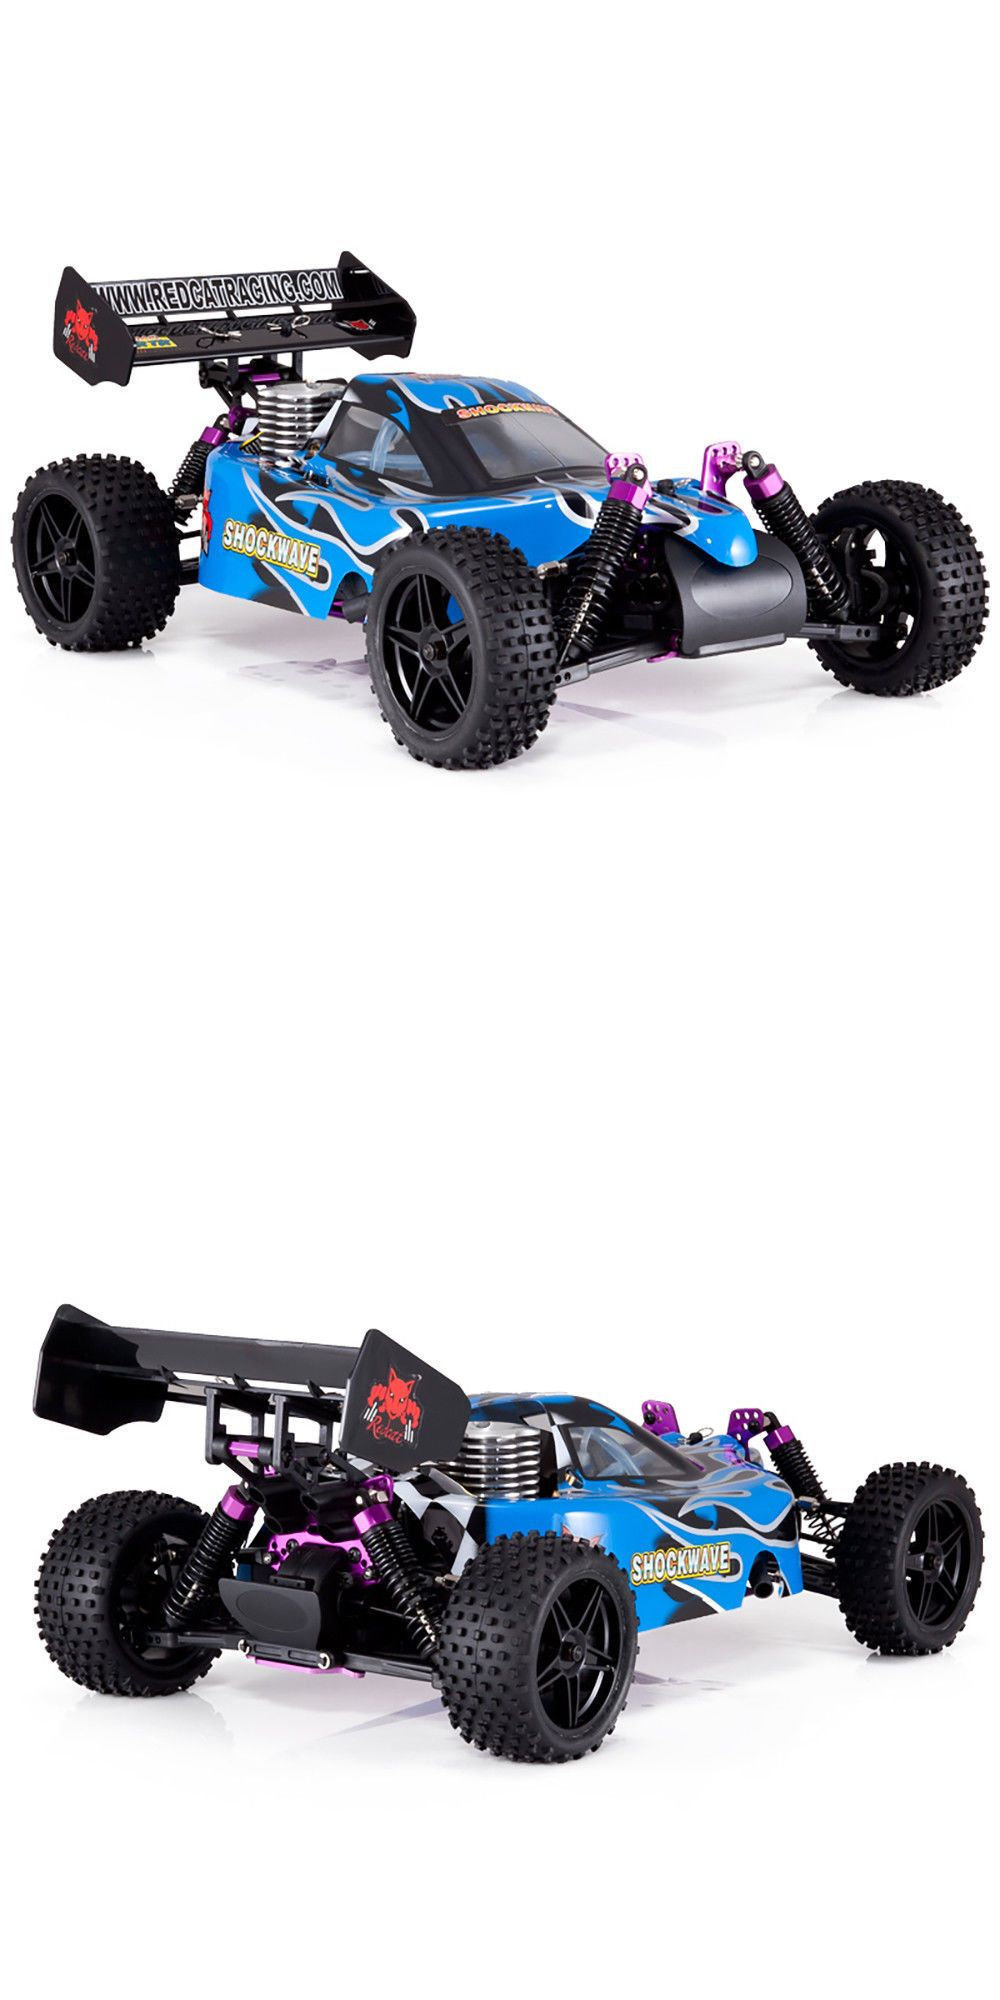 Rc Model Vehicles And Kits 182181 Redcat Racing Shockwave 1 10